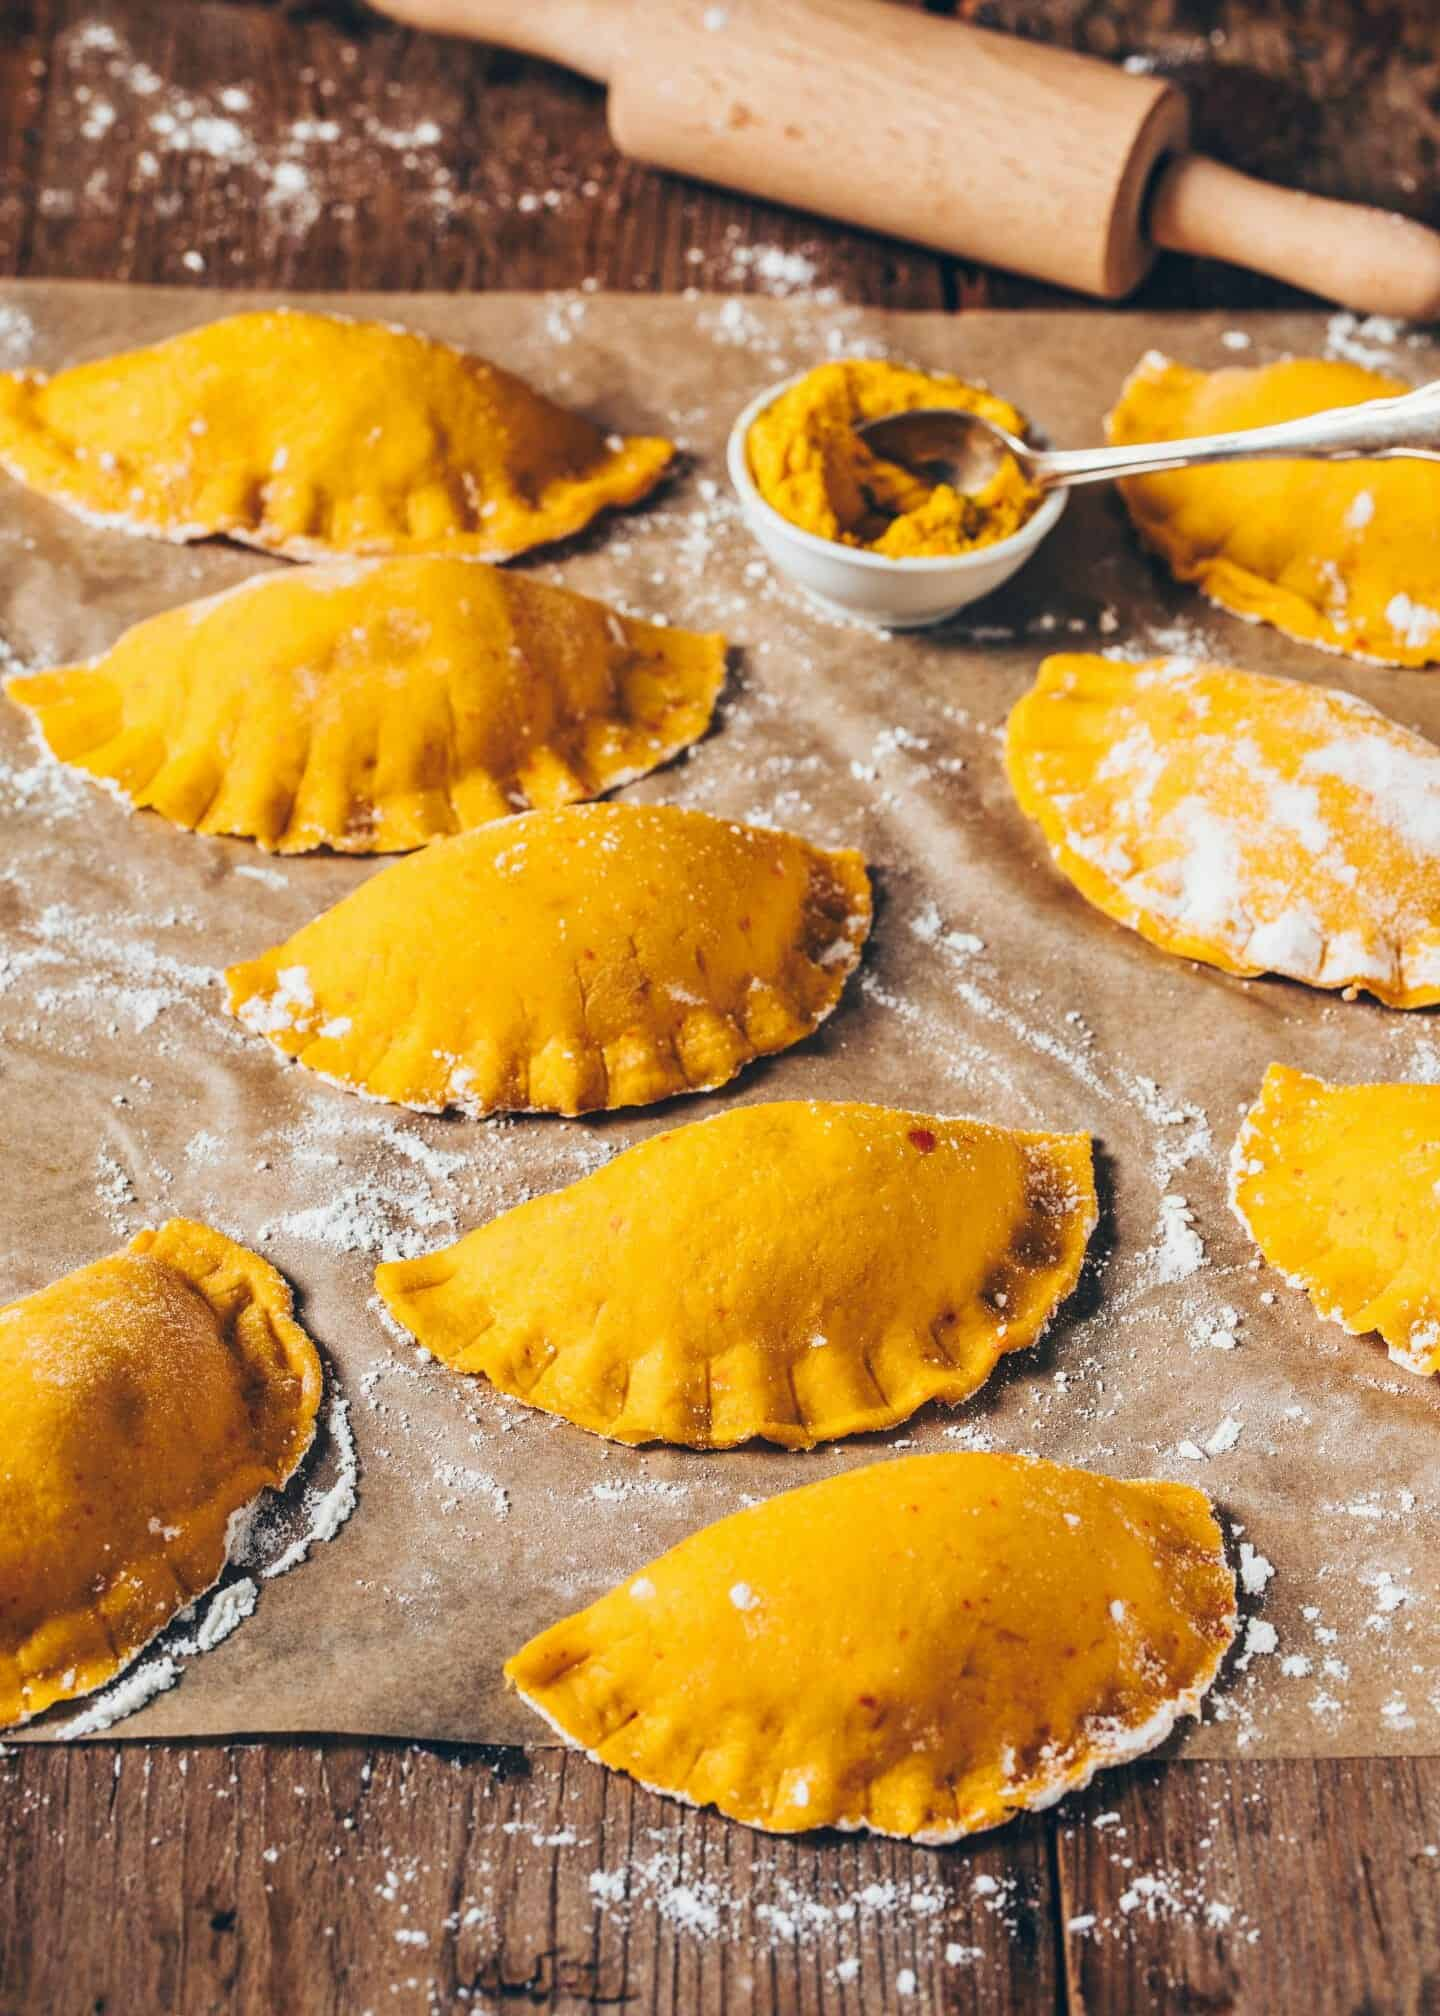 This vegan jumbo pumpkin ravioli taste incredibly delicious and are made super easy and quick! The recipe is vegan, simple and healthy. Crispy roasted and served with a creamy Pumpkin Pasta Sauce, it makes the perfect dinner or lunch.